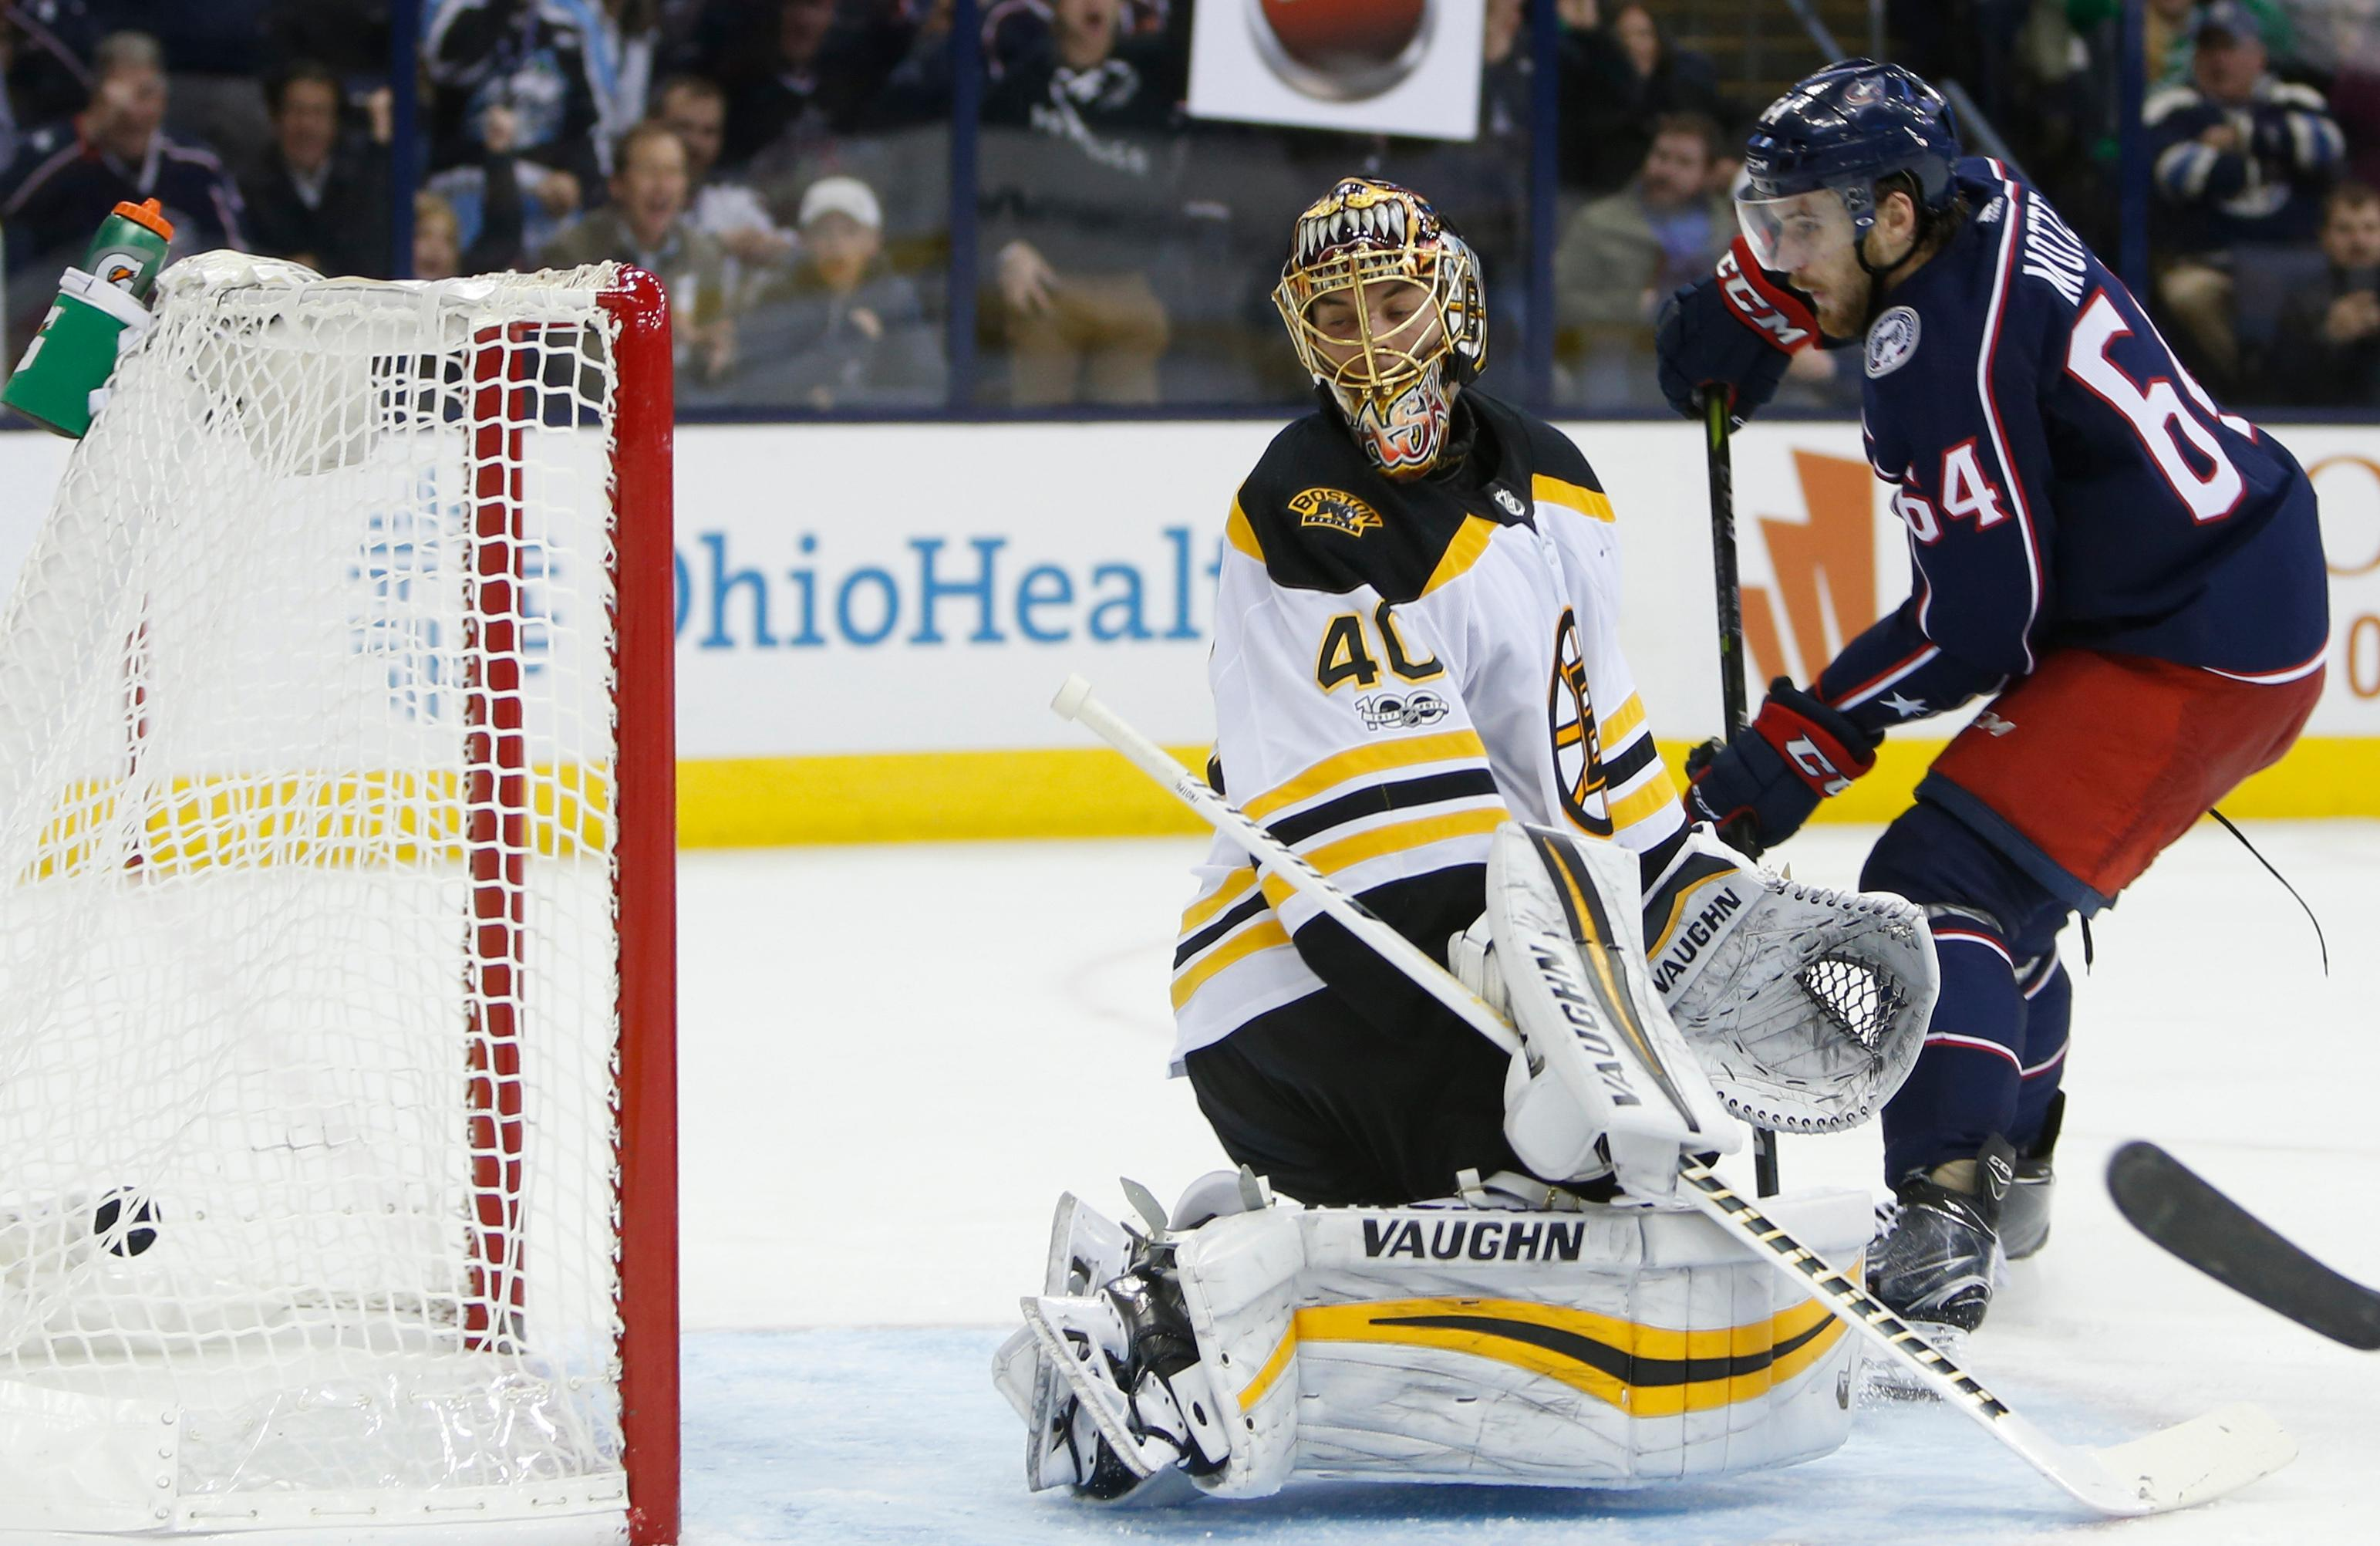 Columbus Blue Jackets' Tyler Motte, right, scores a goal past Boston Bruins' Tuukka Rask, of Finland, during the second period of an NHL hockey game Monday, Oct. 30, 2017, in Columbus, Ohio. (AP Photo/Jay LaPrete)